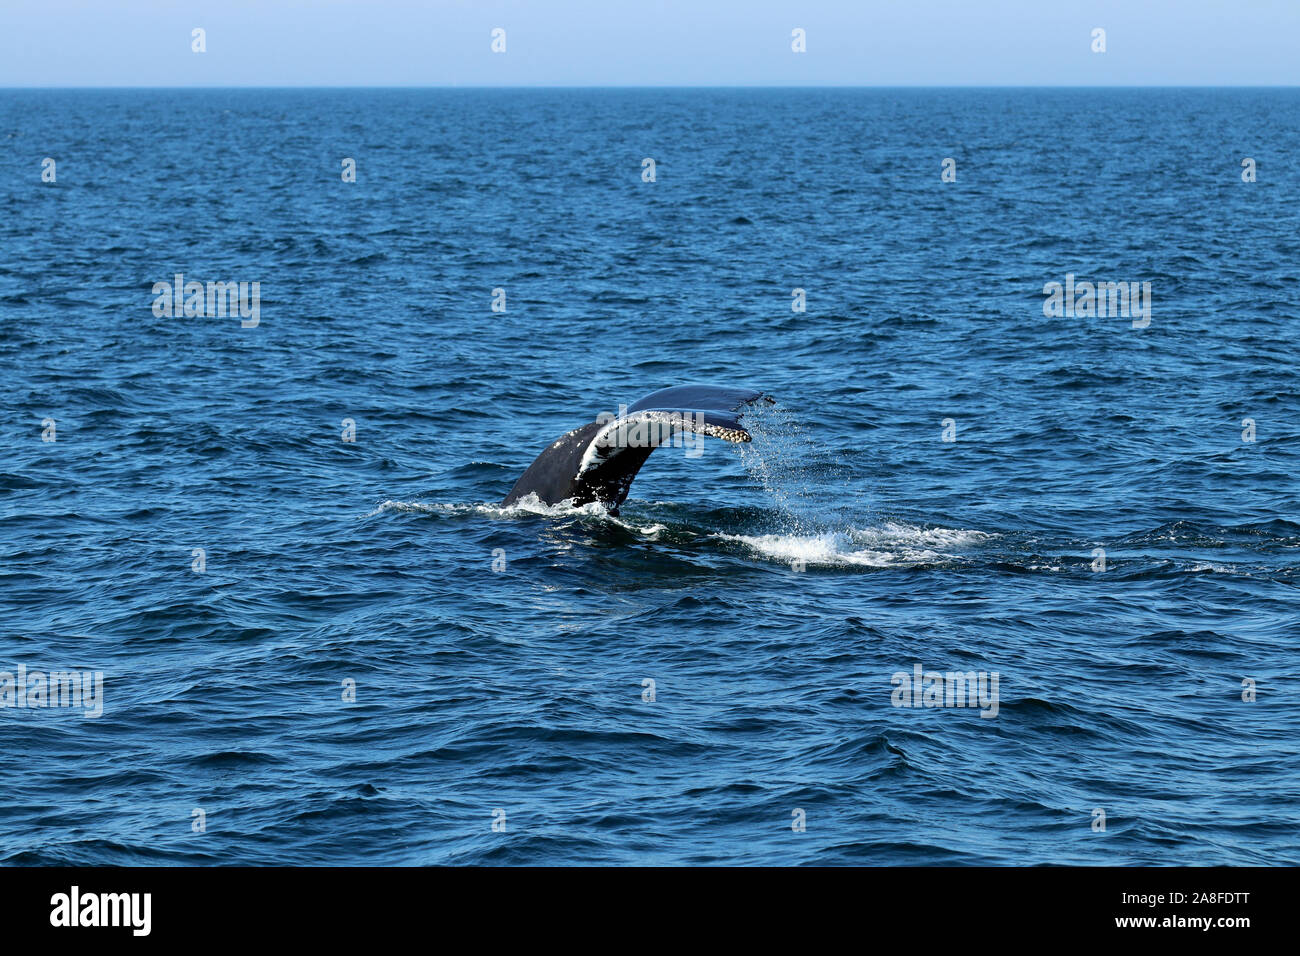 The fluke of a humpback whale (Megaptera novaeangliae) in a dive at Stellwagen Bank National Marine Sanctuary off the Massachusetts coast Stock Photo